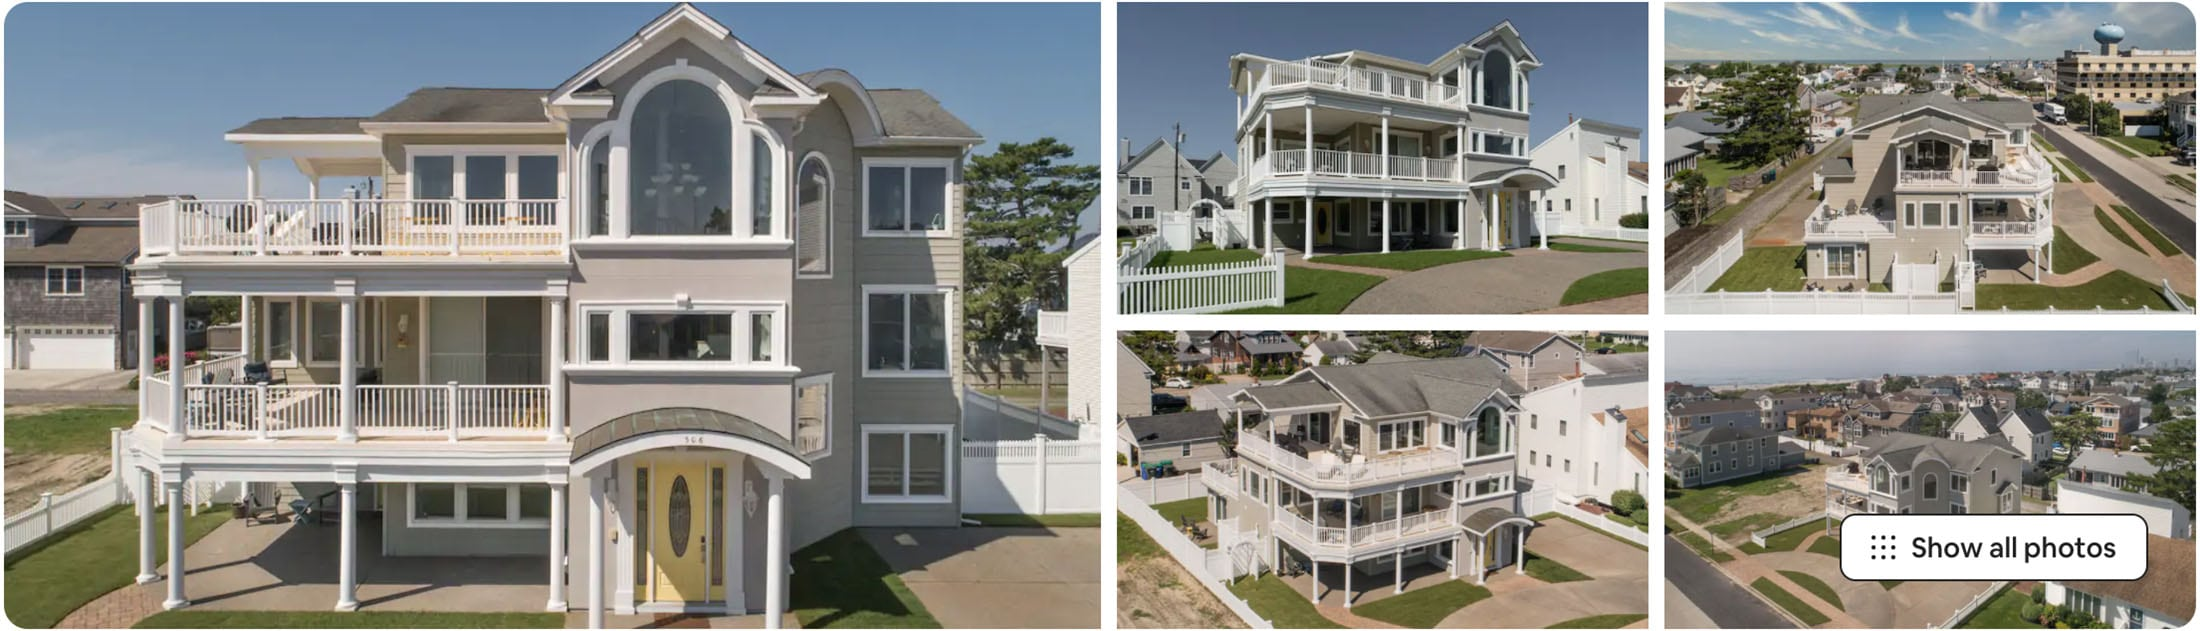 beachside house in new jersey